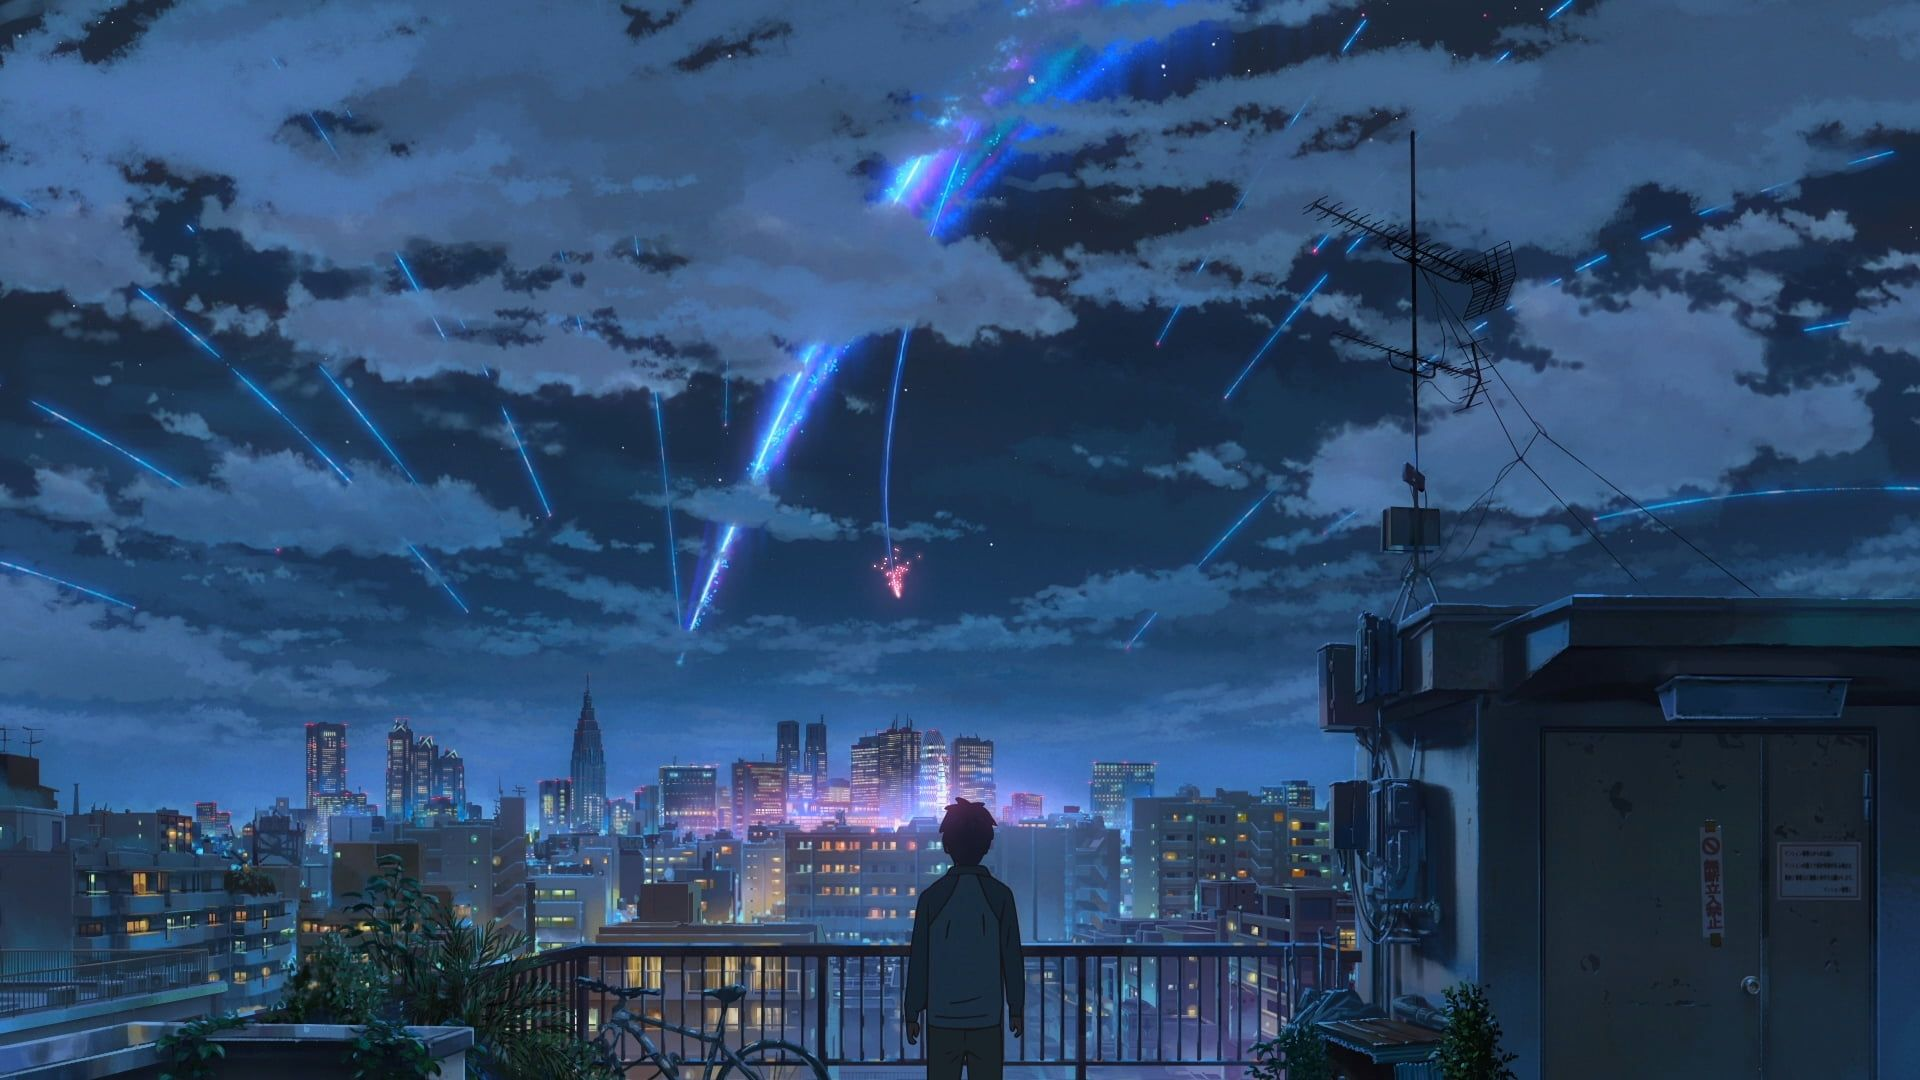 Your Name Wallpaper Kimi No Na Wa Makoto Shinkai Starry Night Comet 1080p Wallpaper Hdwallpaper Name Wallpaper Your Name Wallpaper Anime Scenery Wallpaper